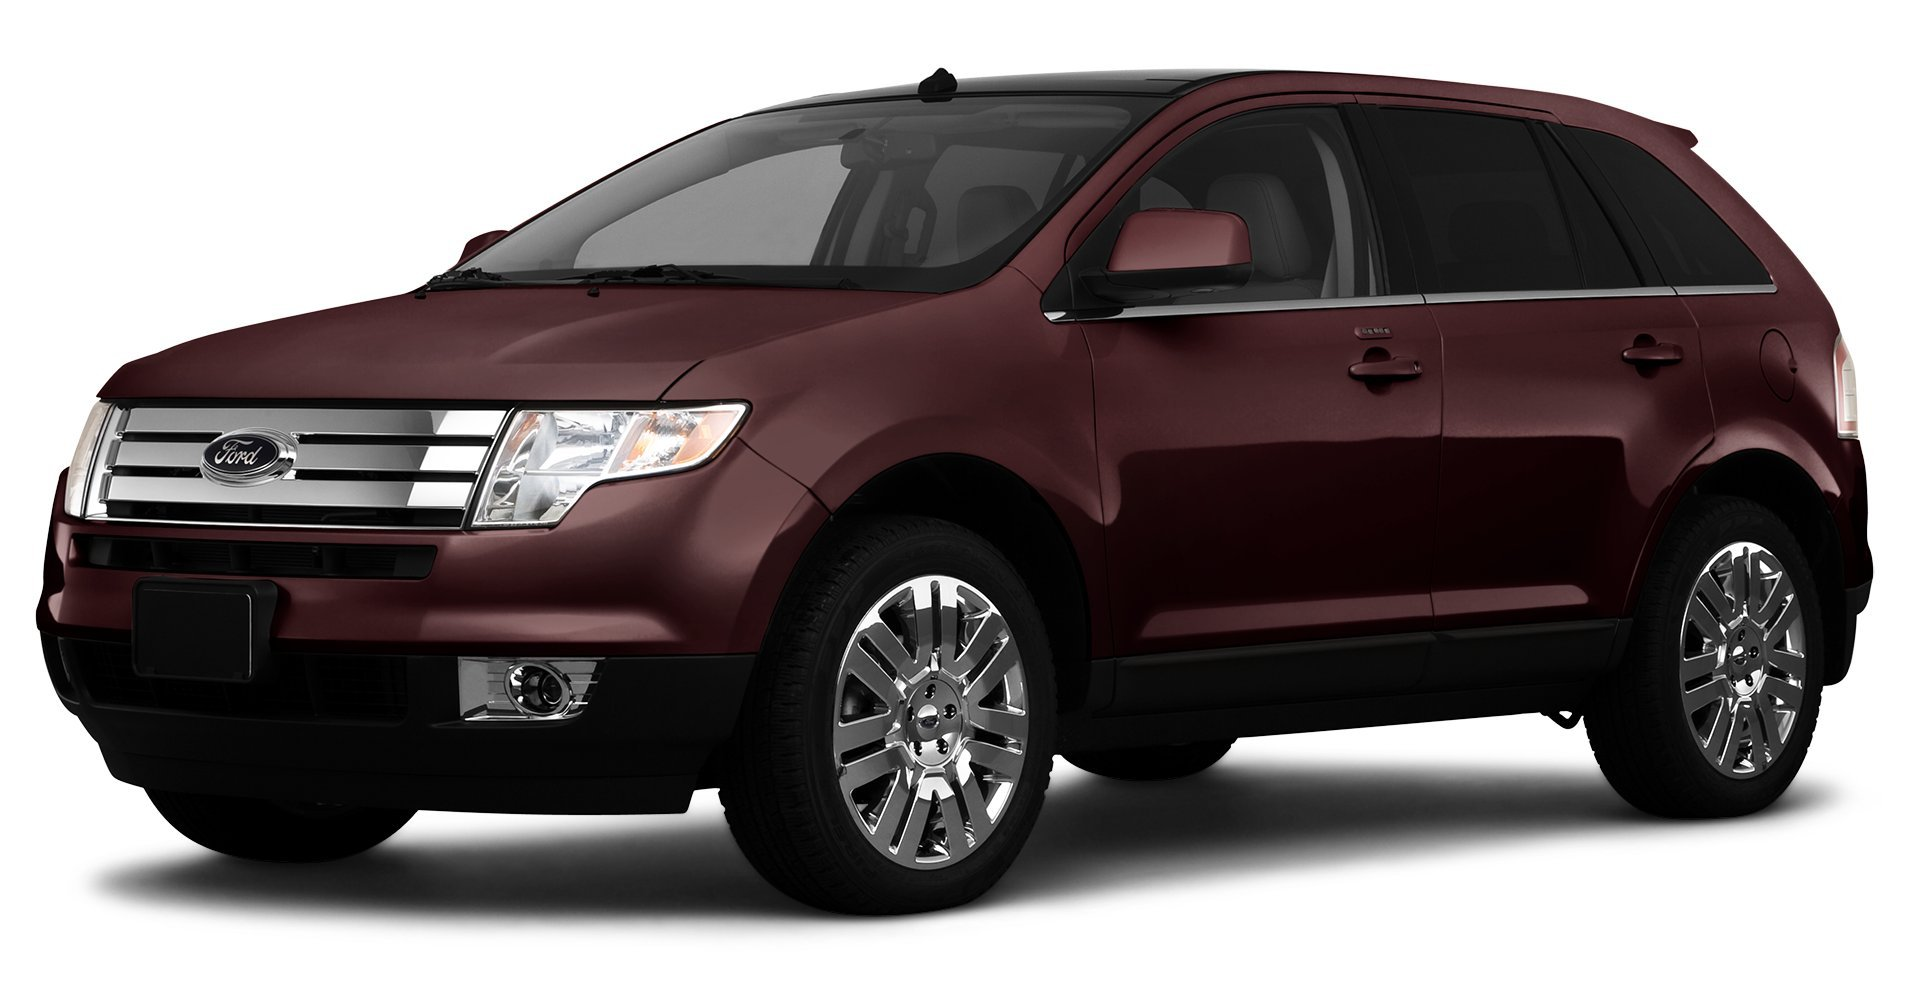 2010 ford edge limited 4 door all wheel drive